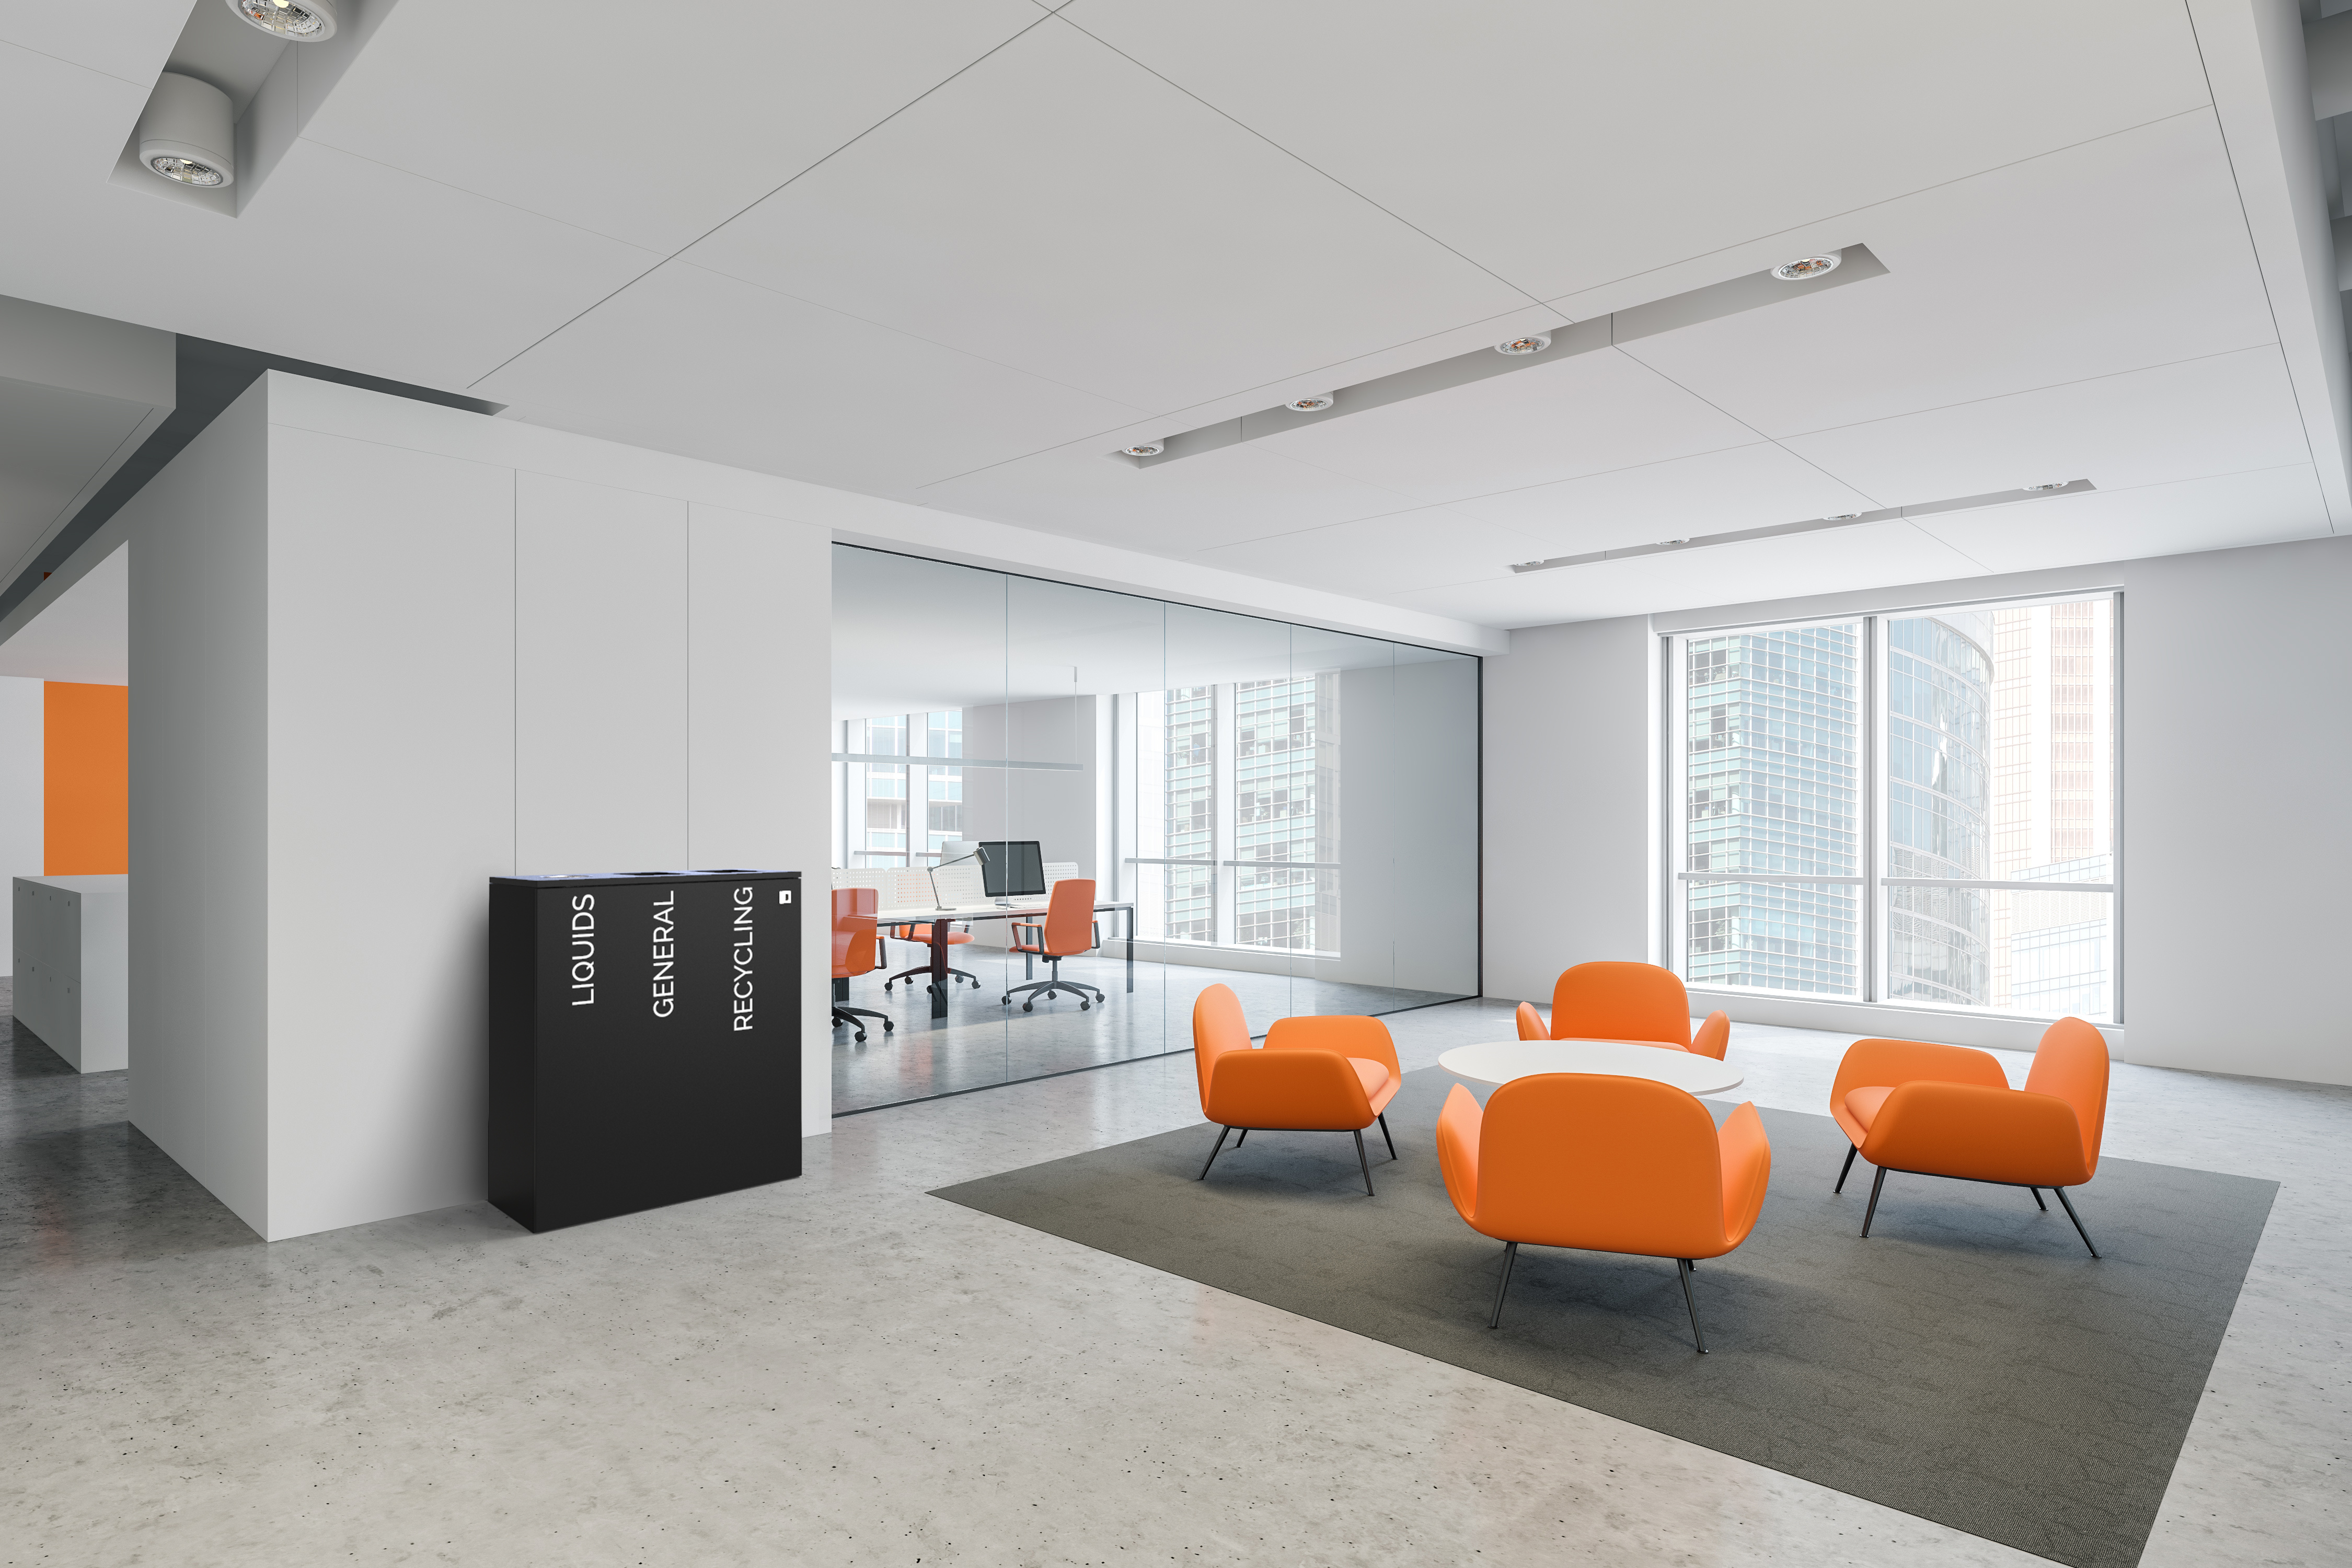 stylish and modern office recycling bins and office waste bins for office and canteen areas